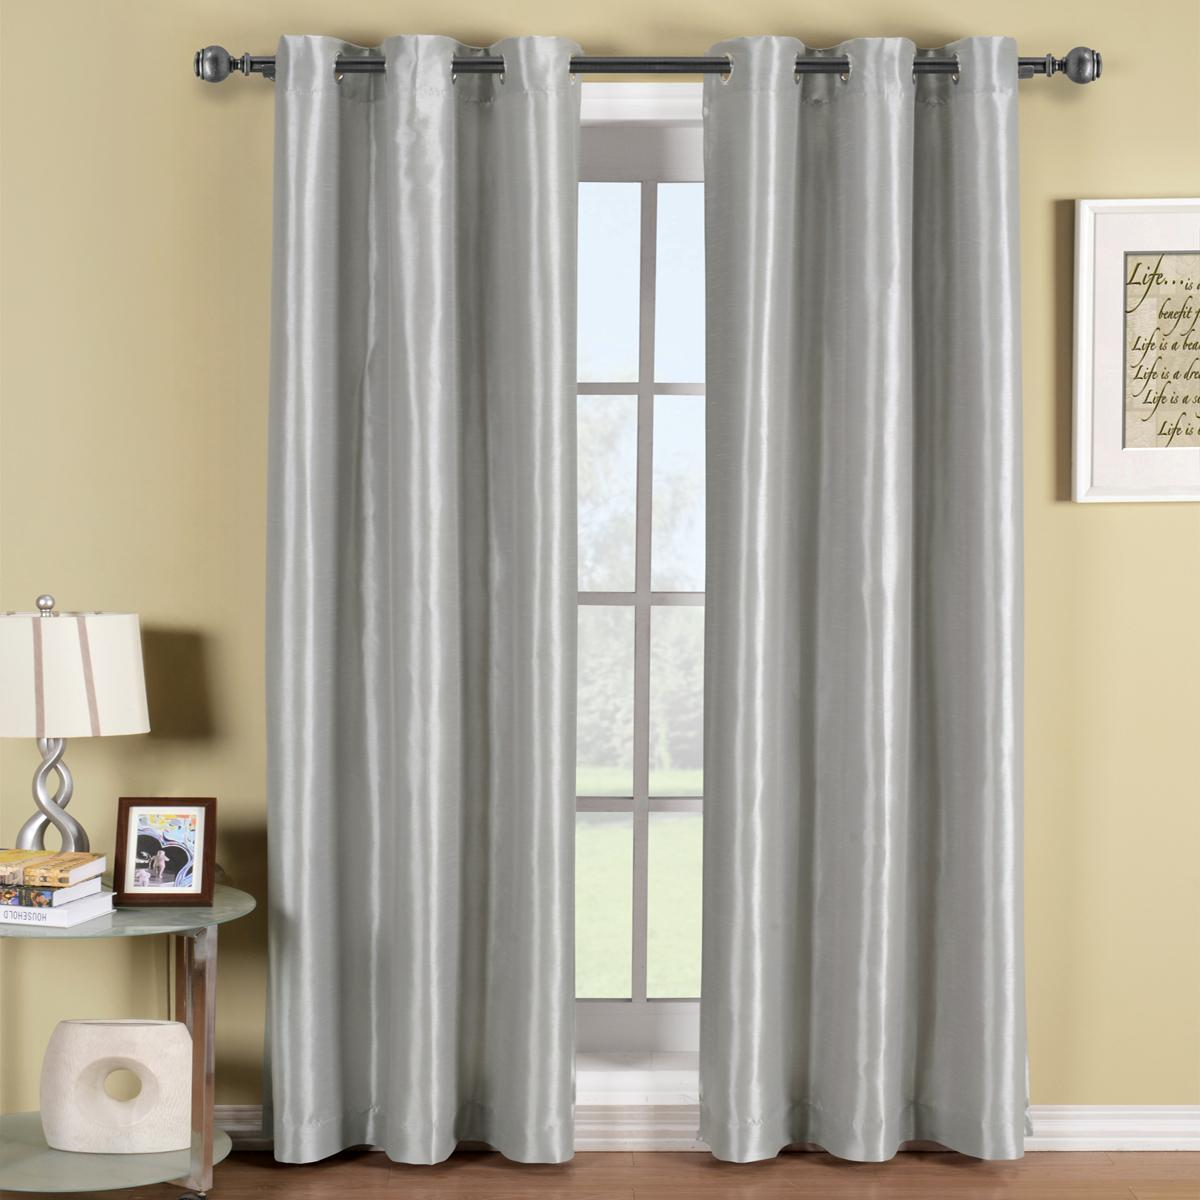 Soho Grommet Blackout Curtain Panel 42 Wide X 96 Long 13 Color Choices Ebay